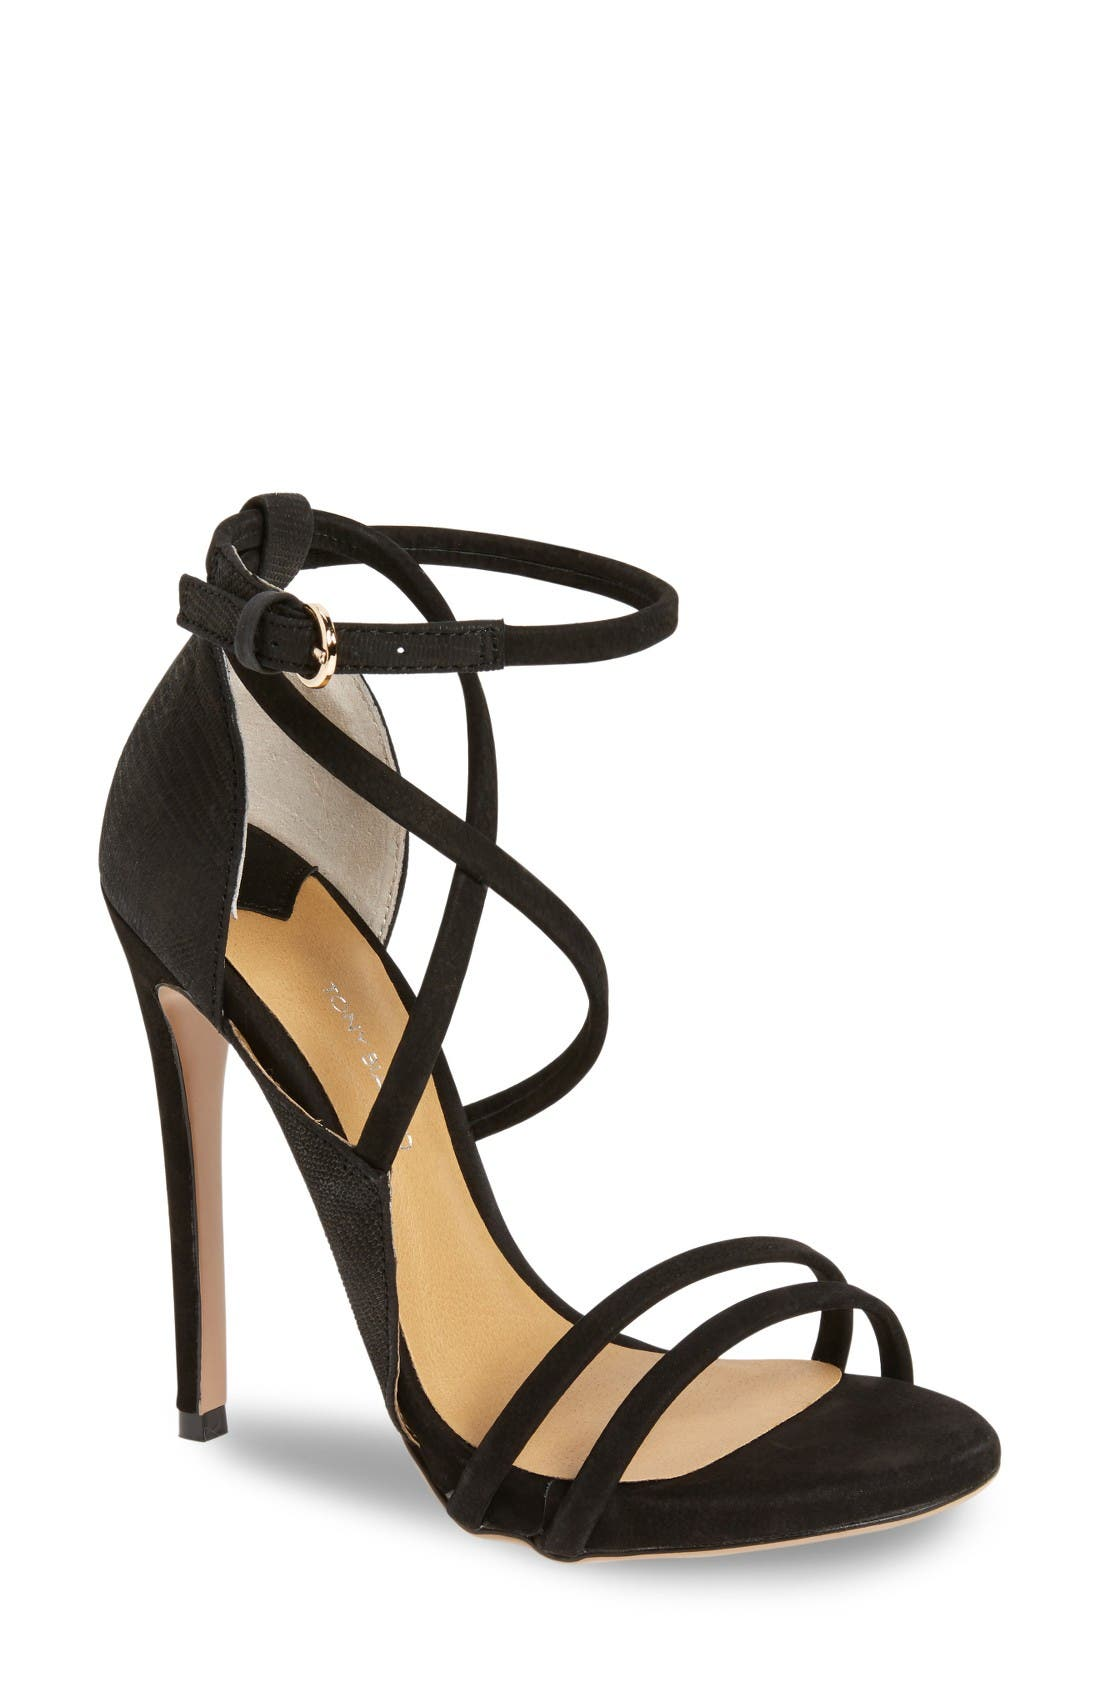 Alita Strappy Sandal,                             Main thumbnail 1, color,                             Black Chicago/ Black Berlin